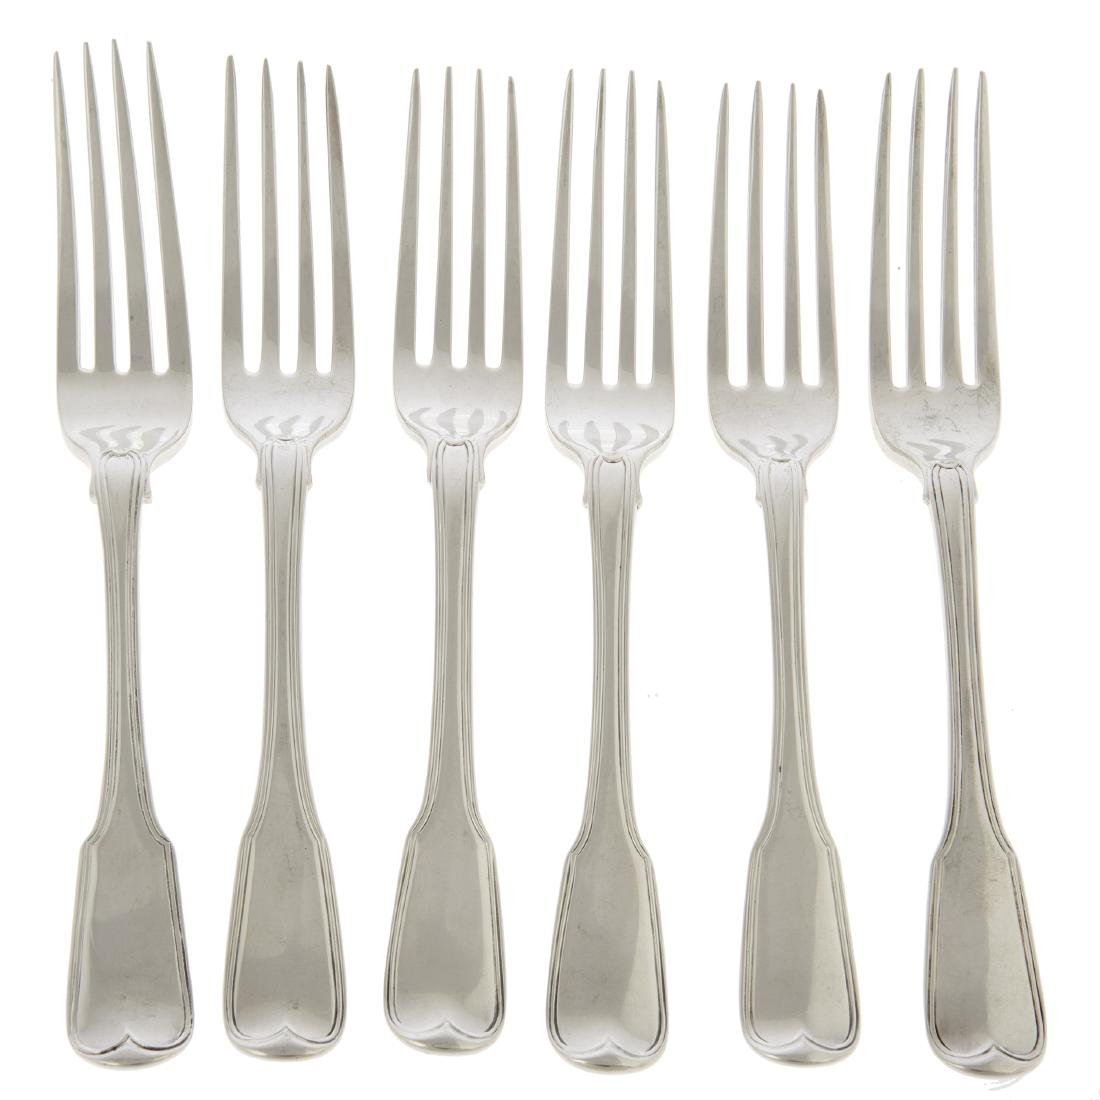 An English silver assembled set of six table forks,